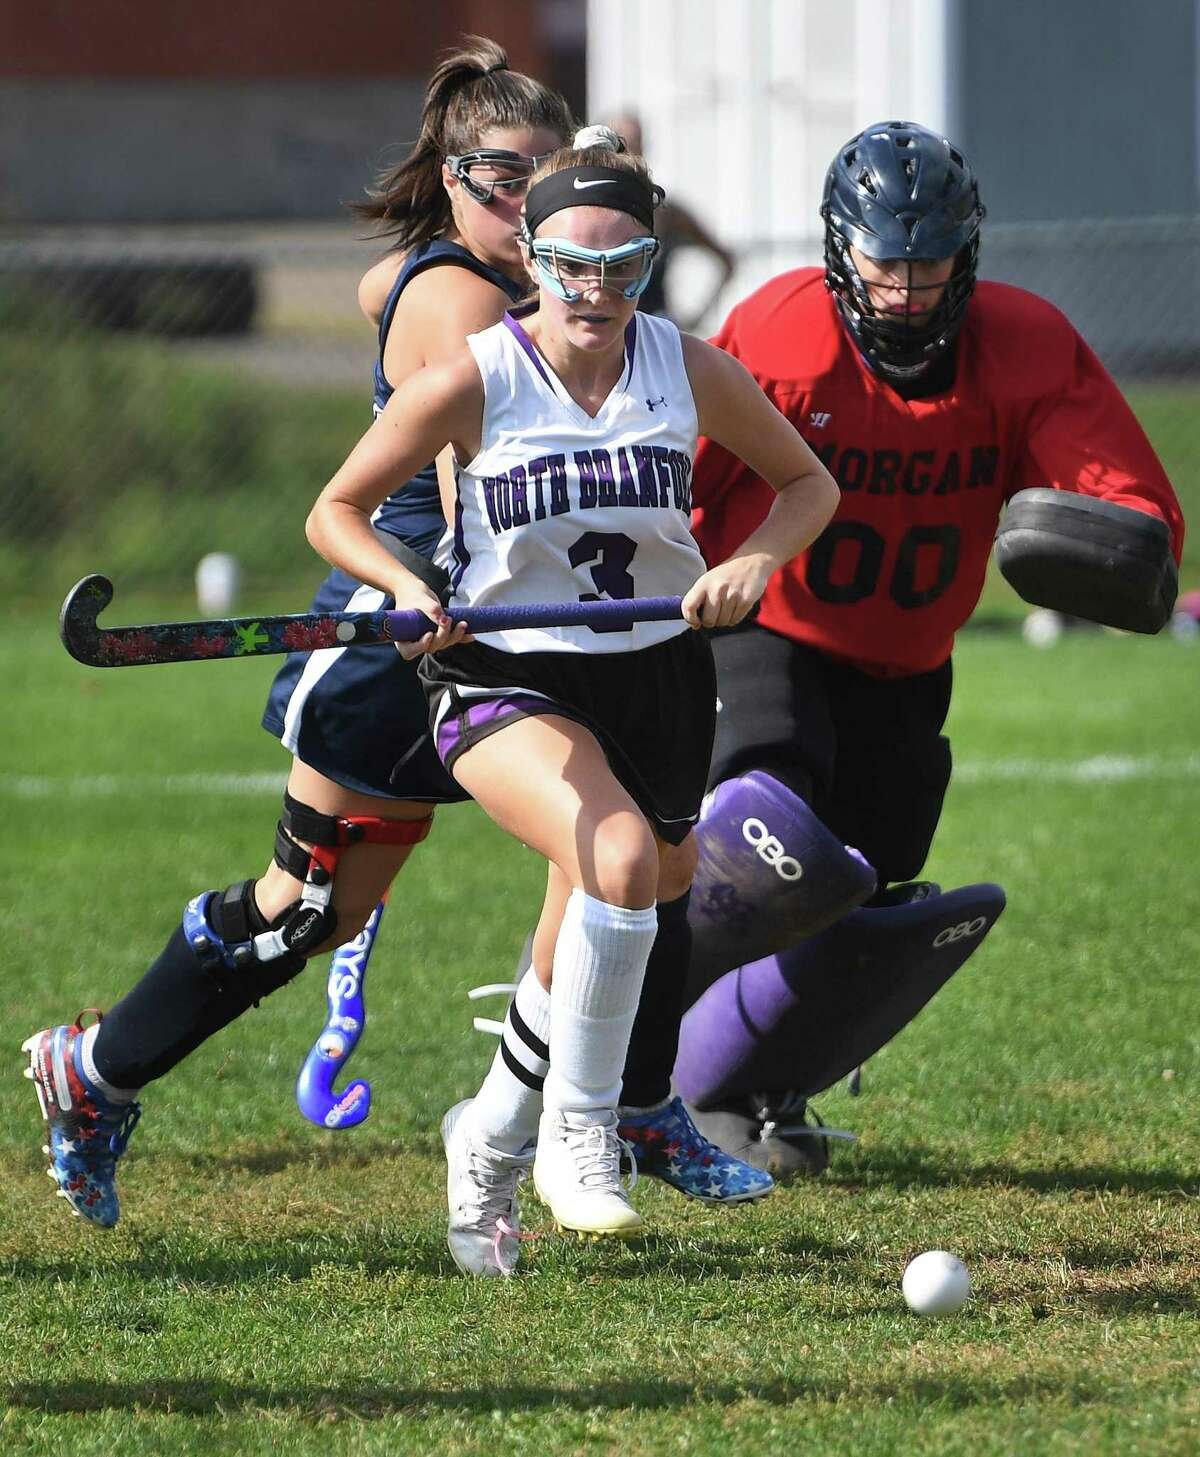 North Branford's Ava Galdenzi chases down the ball against Morgan on Oct. 13.